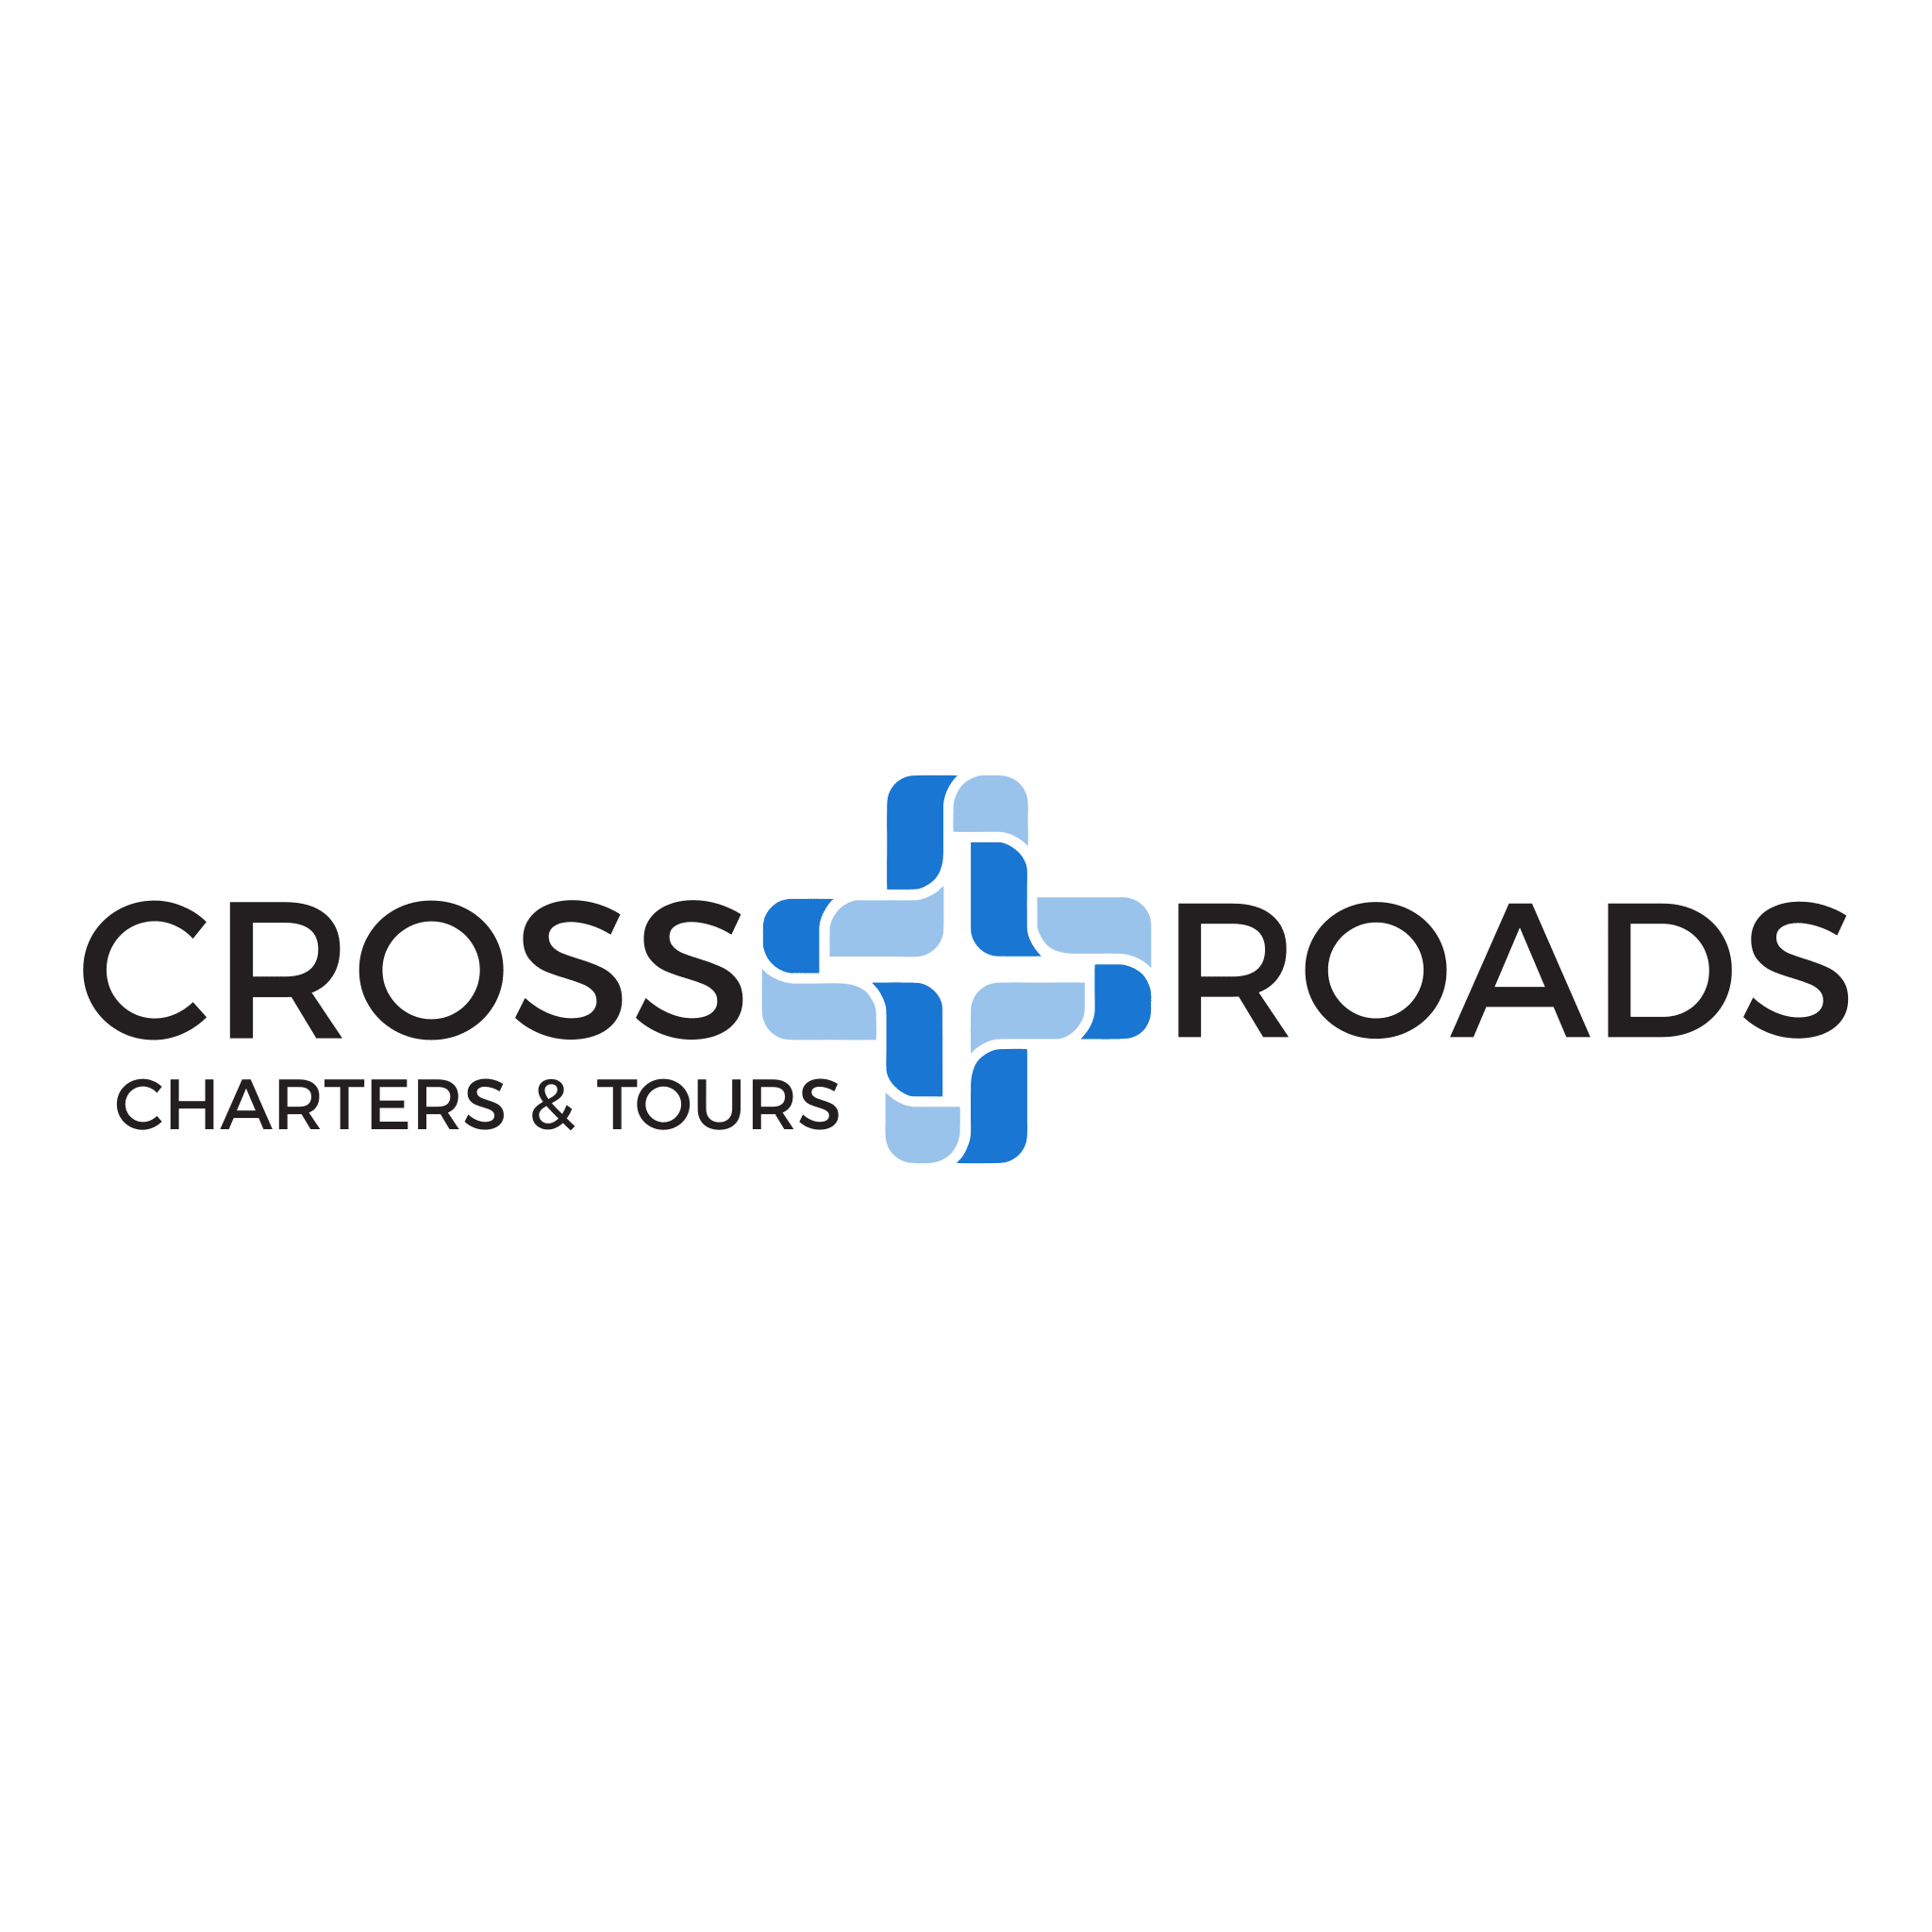 Cross Roads Charters & Tours